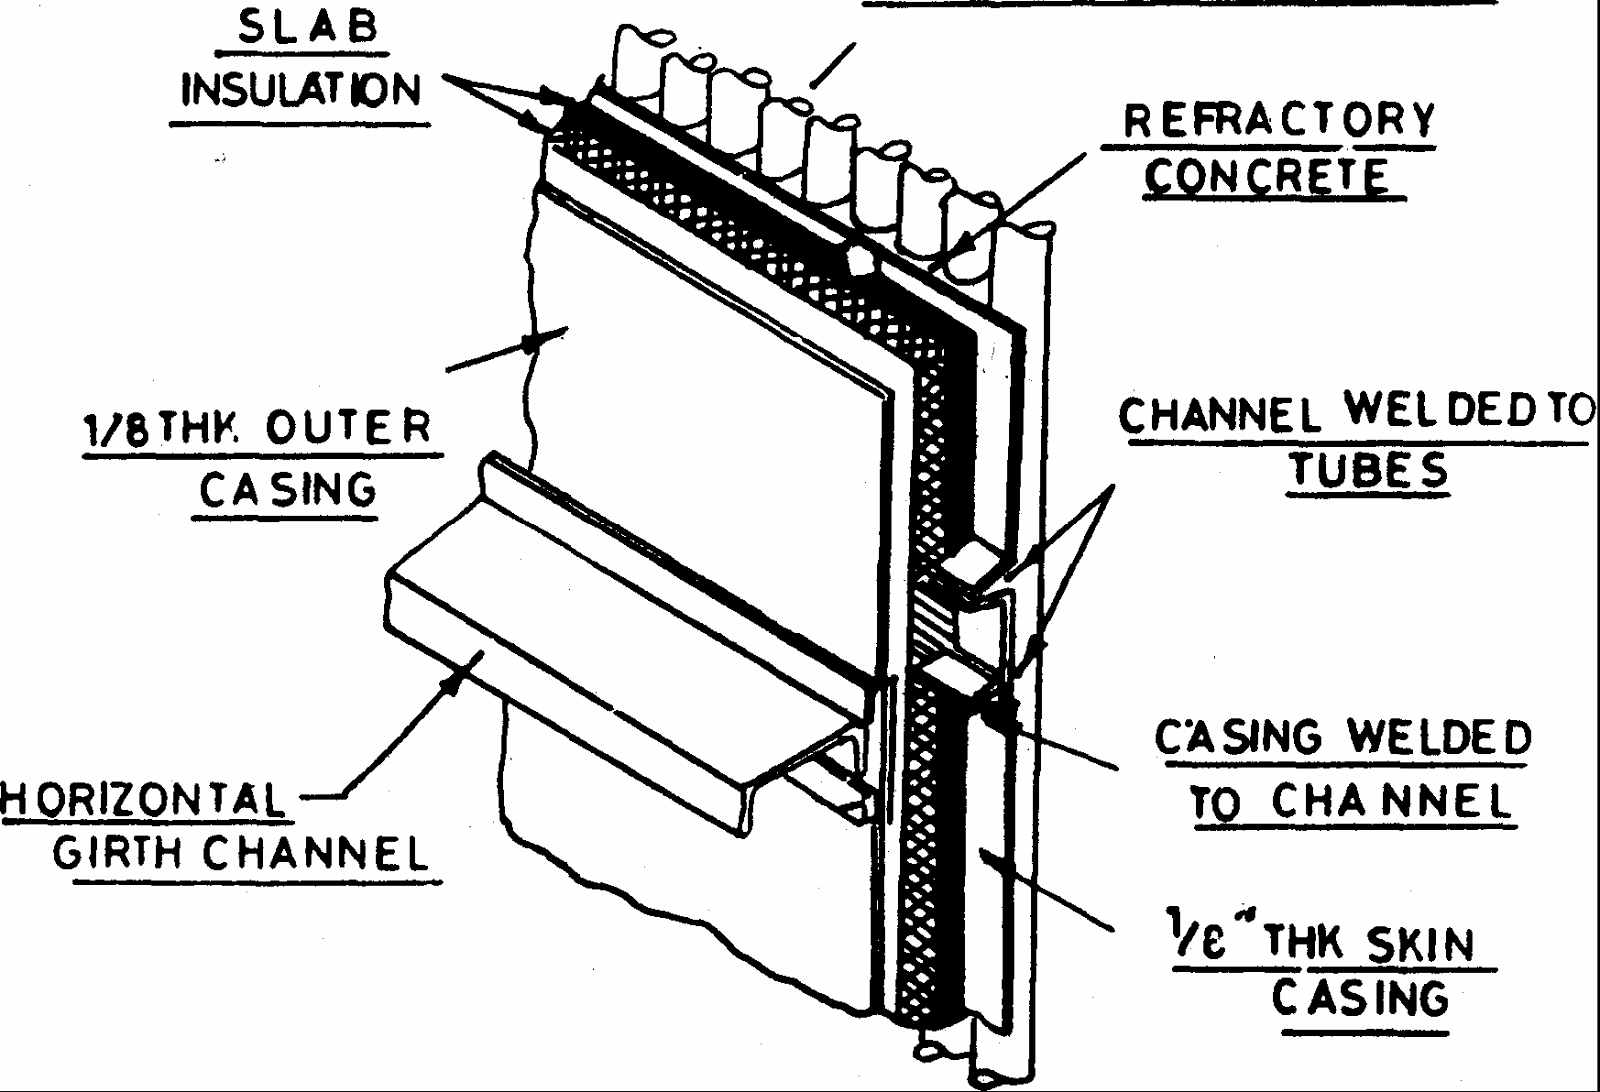 Rheem Furnace Electrical Diagram besides Thermostat Wiring Instructions as well Beckett Oil Furnace Wiring Diagram besides Nordyne Wiring Diagram Factory Home as well US5409373. on miller furnace wiring diagram